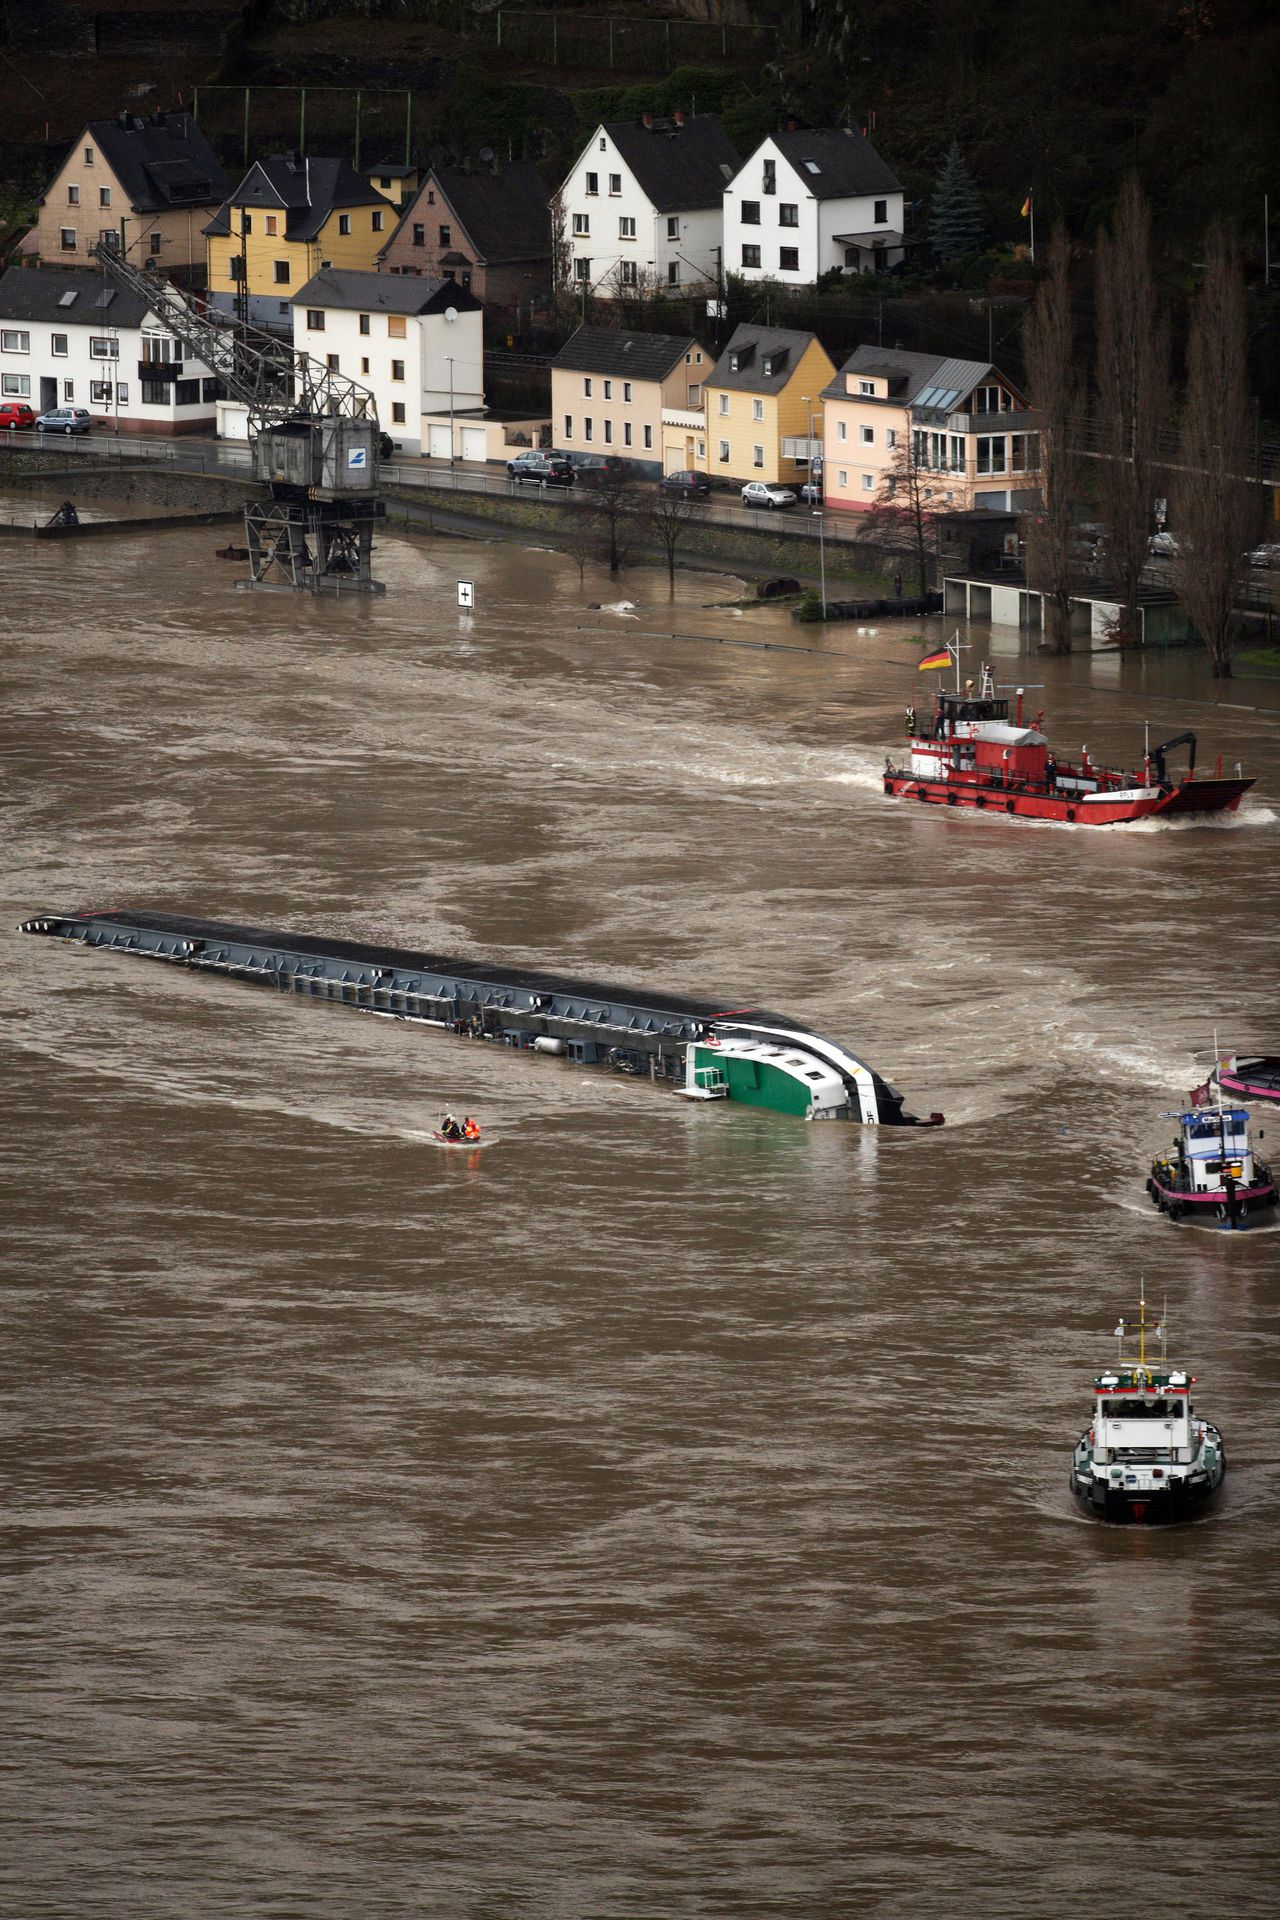 A ship loaded with 2400 tons of sulfuric acid has capsized on the Rhine river near St. Goarshausen, western Germany January 13, 2011. Traffic on the river, a major European shipping artery, was suspended following the accident and two members of the crew were rescued but two others, one German one Czech, are missing according to a water police spokesman. The ship, the Waldhof, measures roughly 110 metres (360 feet) long and was completely turned over, with its keel above the waterline, but it was not immediately clear whether acid had leaked into the river AFP PHOTO / THOMAS FREY GERMANY OUT